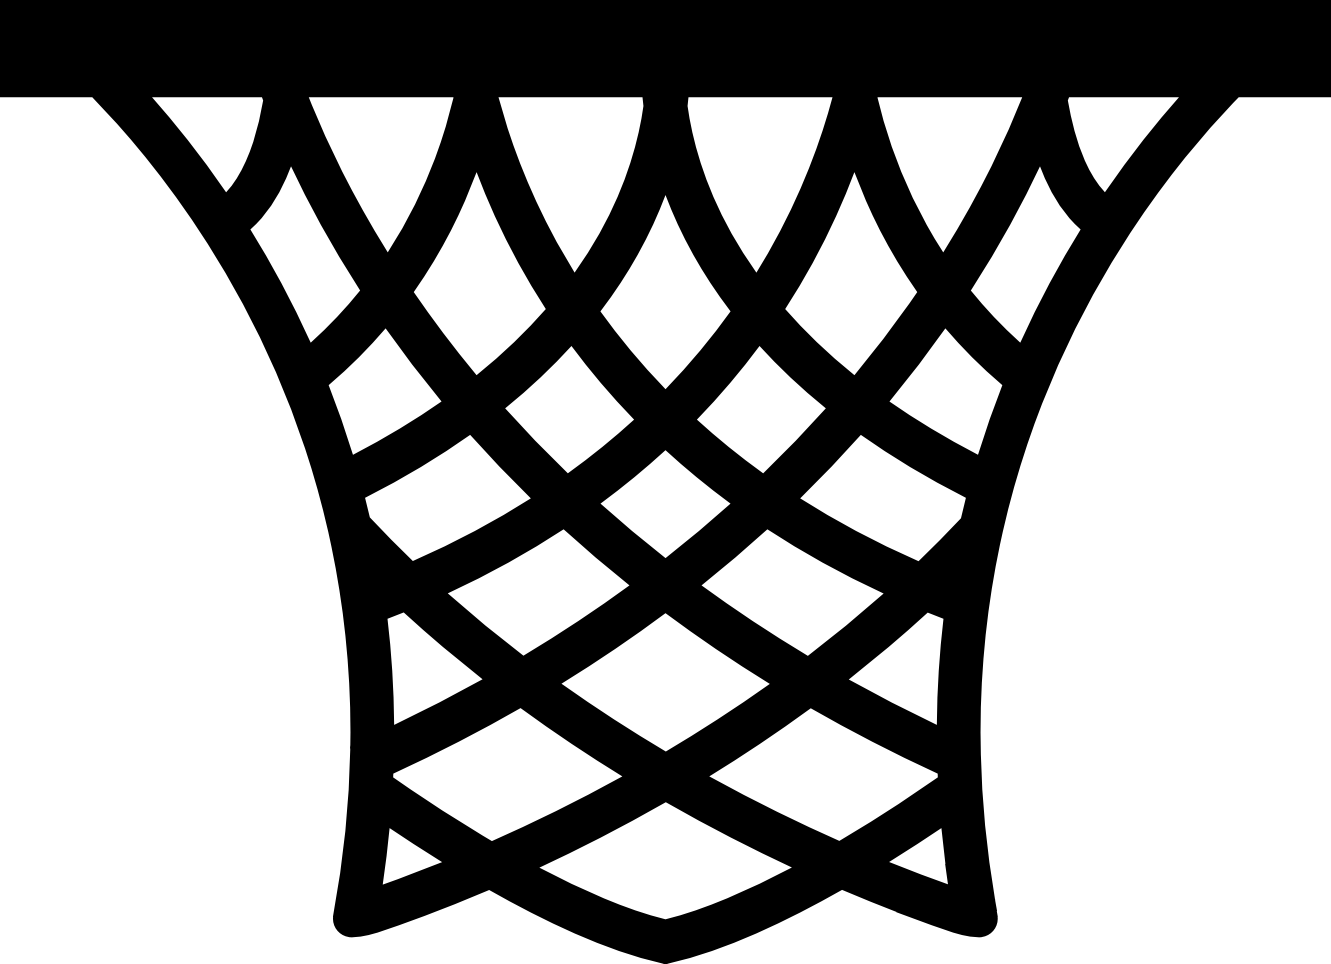 Netting clip basketball net. White background images all